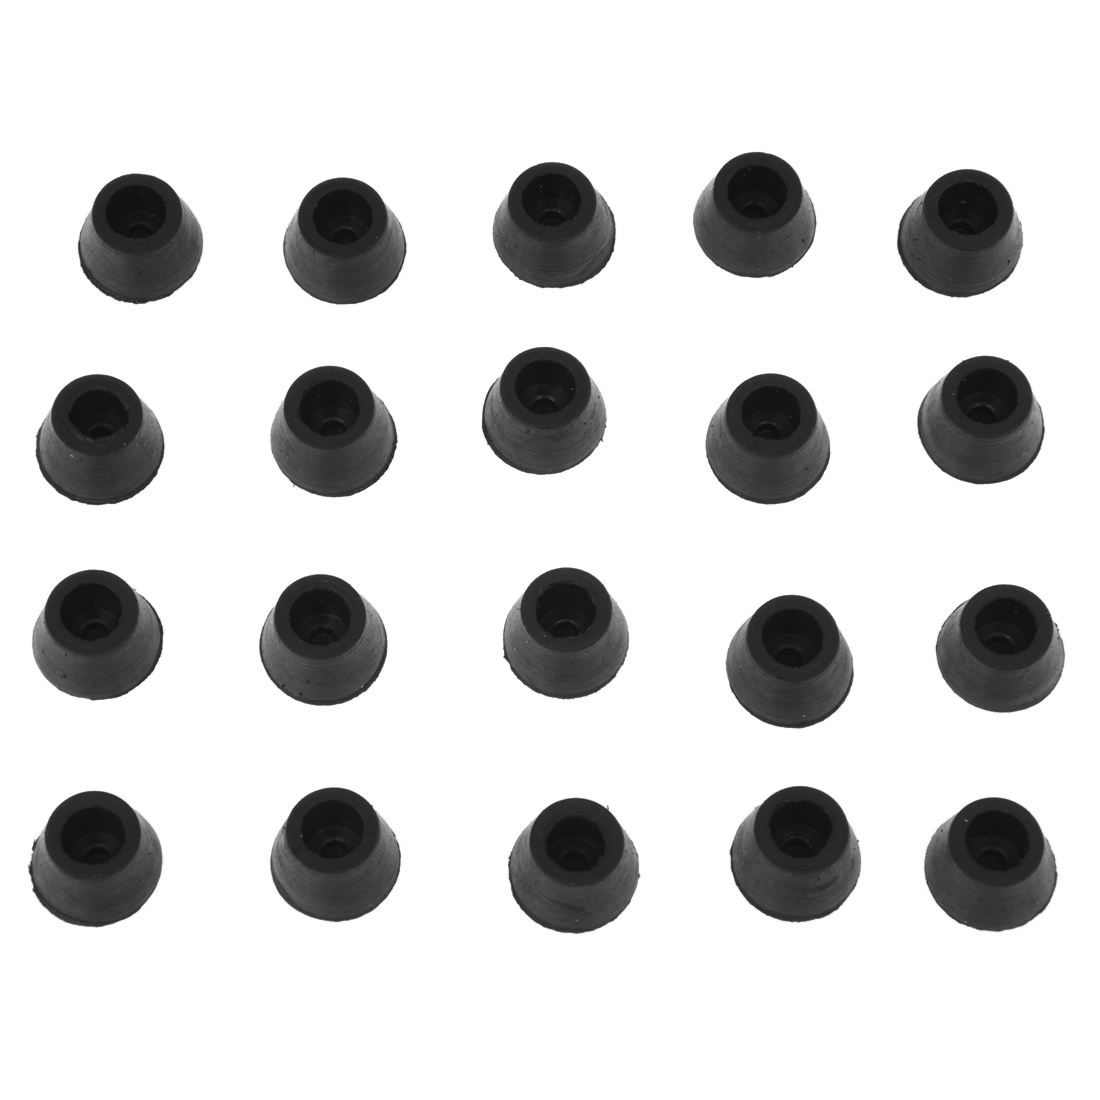 Promotion!   Black 20PCS Chair Couch Table Rubber Furniture Leg End Caps 16mm Dia